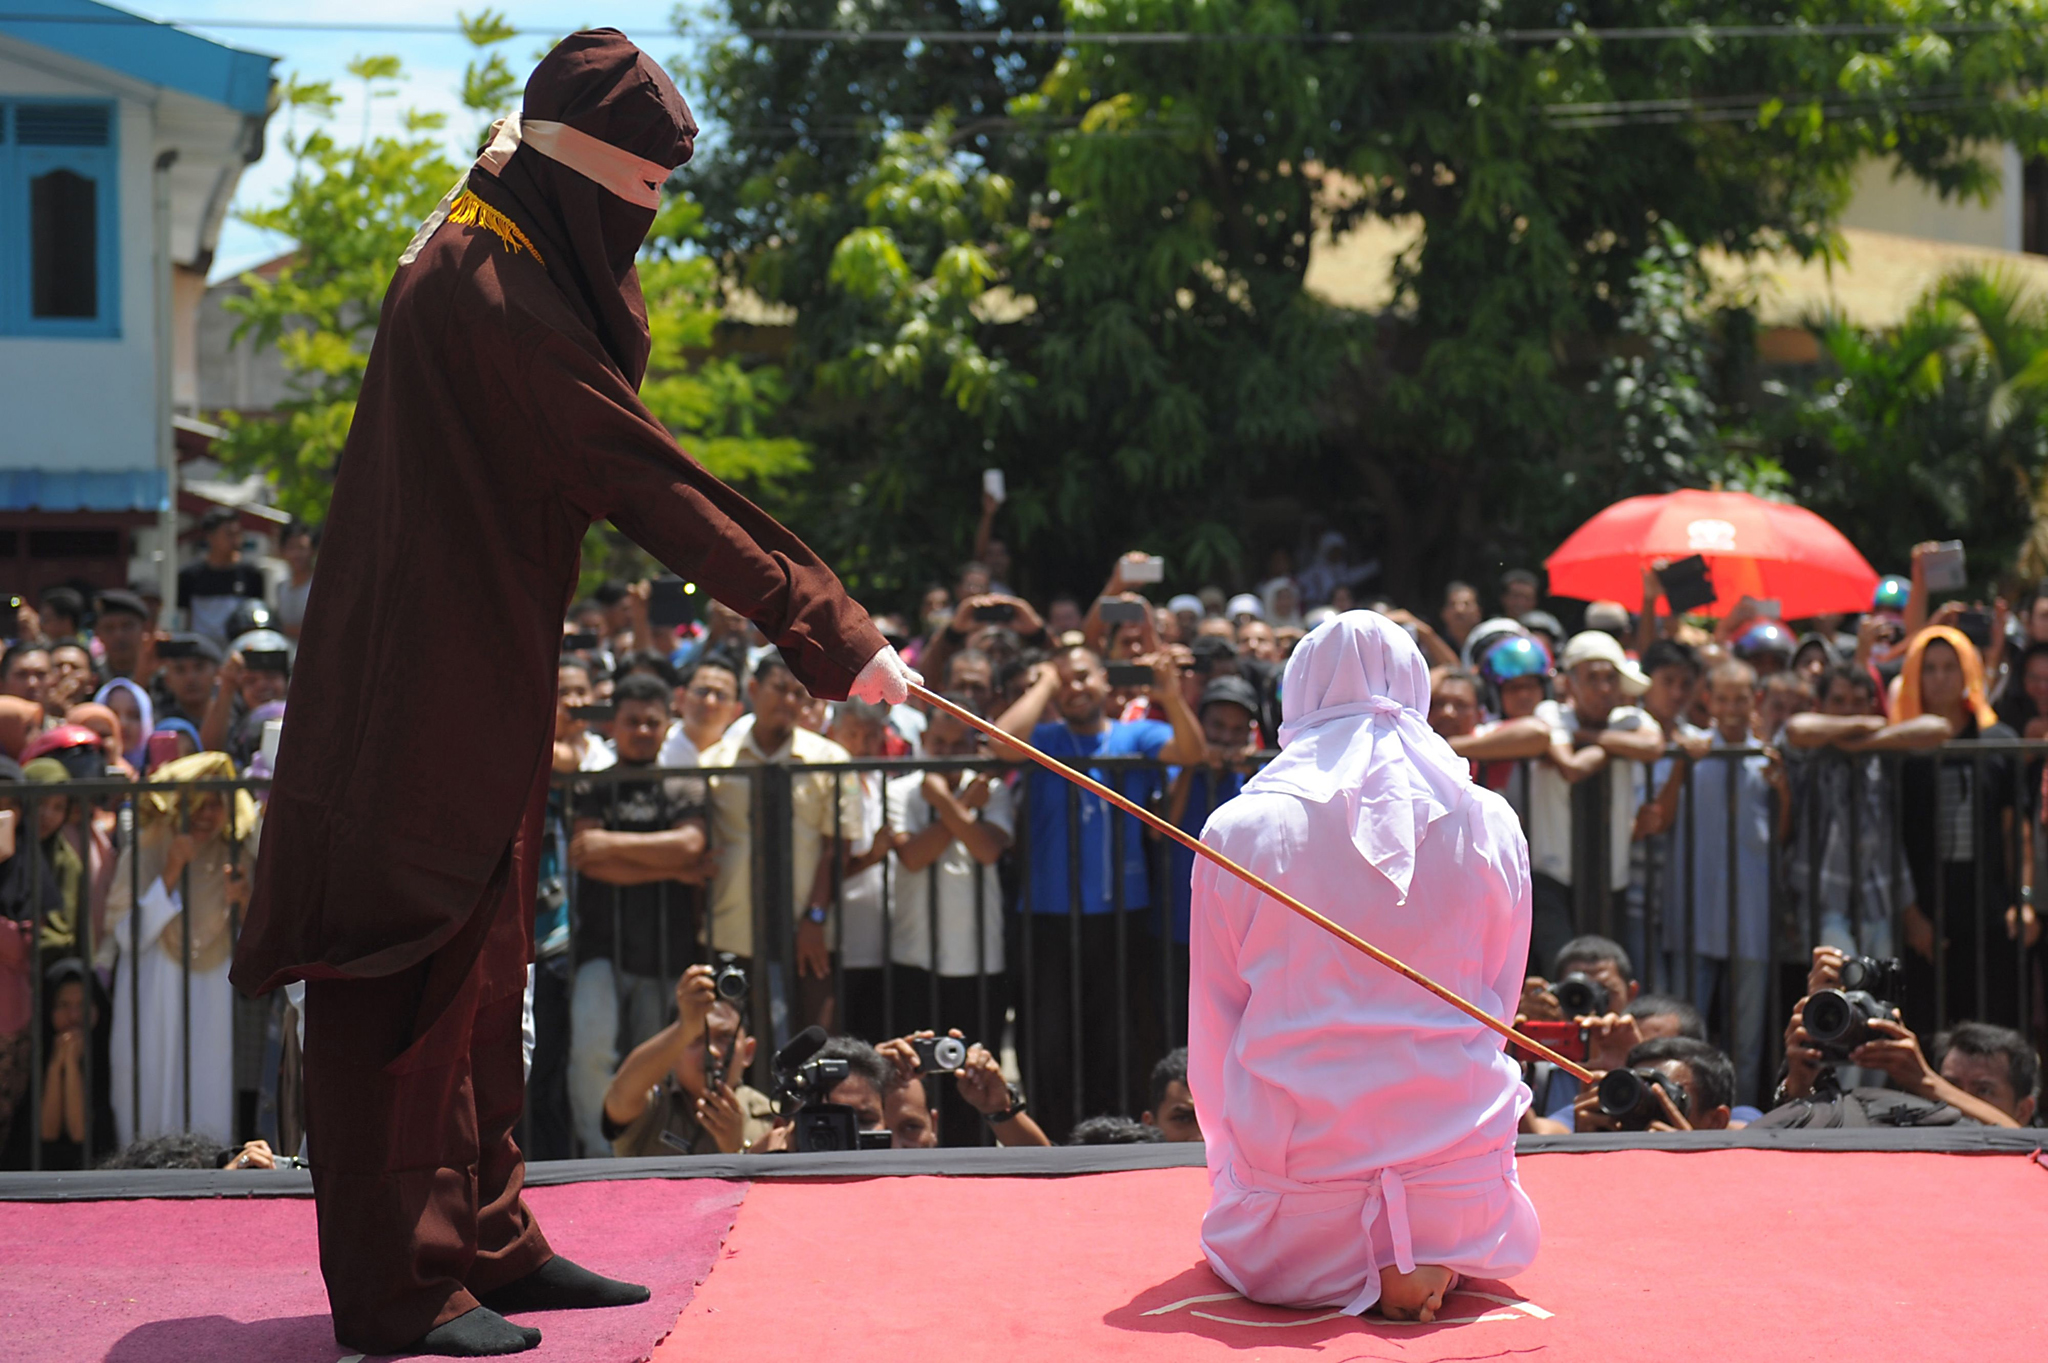 A religious officer canes an Acehnese youth onstage as punishment for dating outside of marriage, which is against sharia law, outside a mosque in Banda Aceh on August 1, 2016. The strictly Muslim province, Aceh has become increasingly conservative in recent years and is the only one in Indonesia implementing Sharia law. / AFP PHOTO / CHAIDEER MAHYUDDINCHAIDEER MAHYUDDIN/AFP/Getty Images